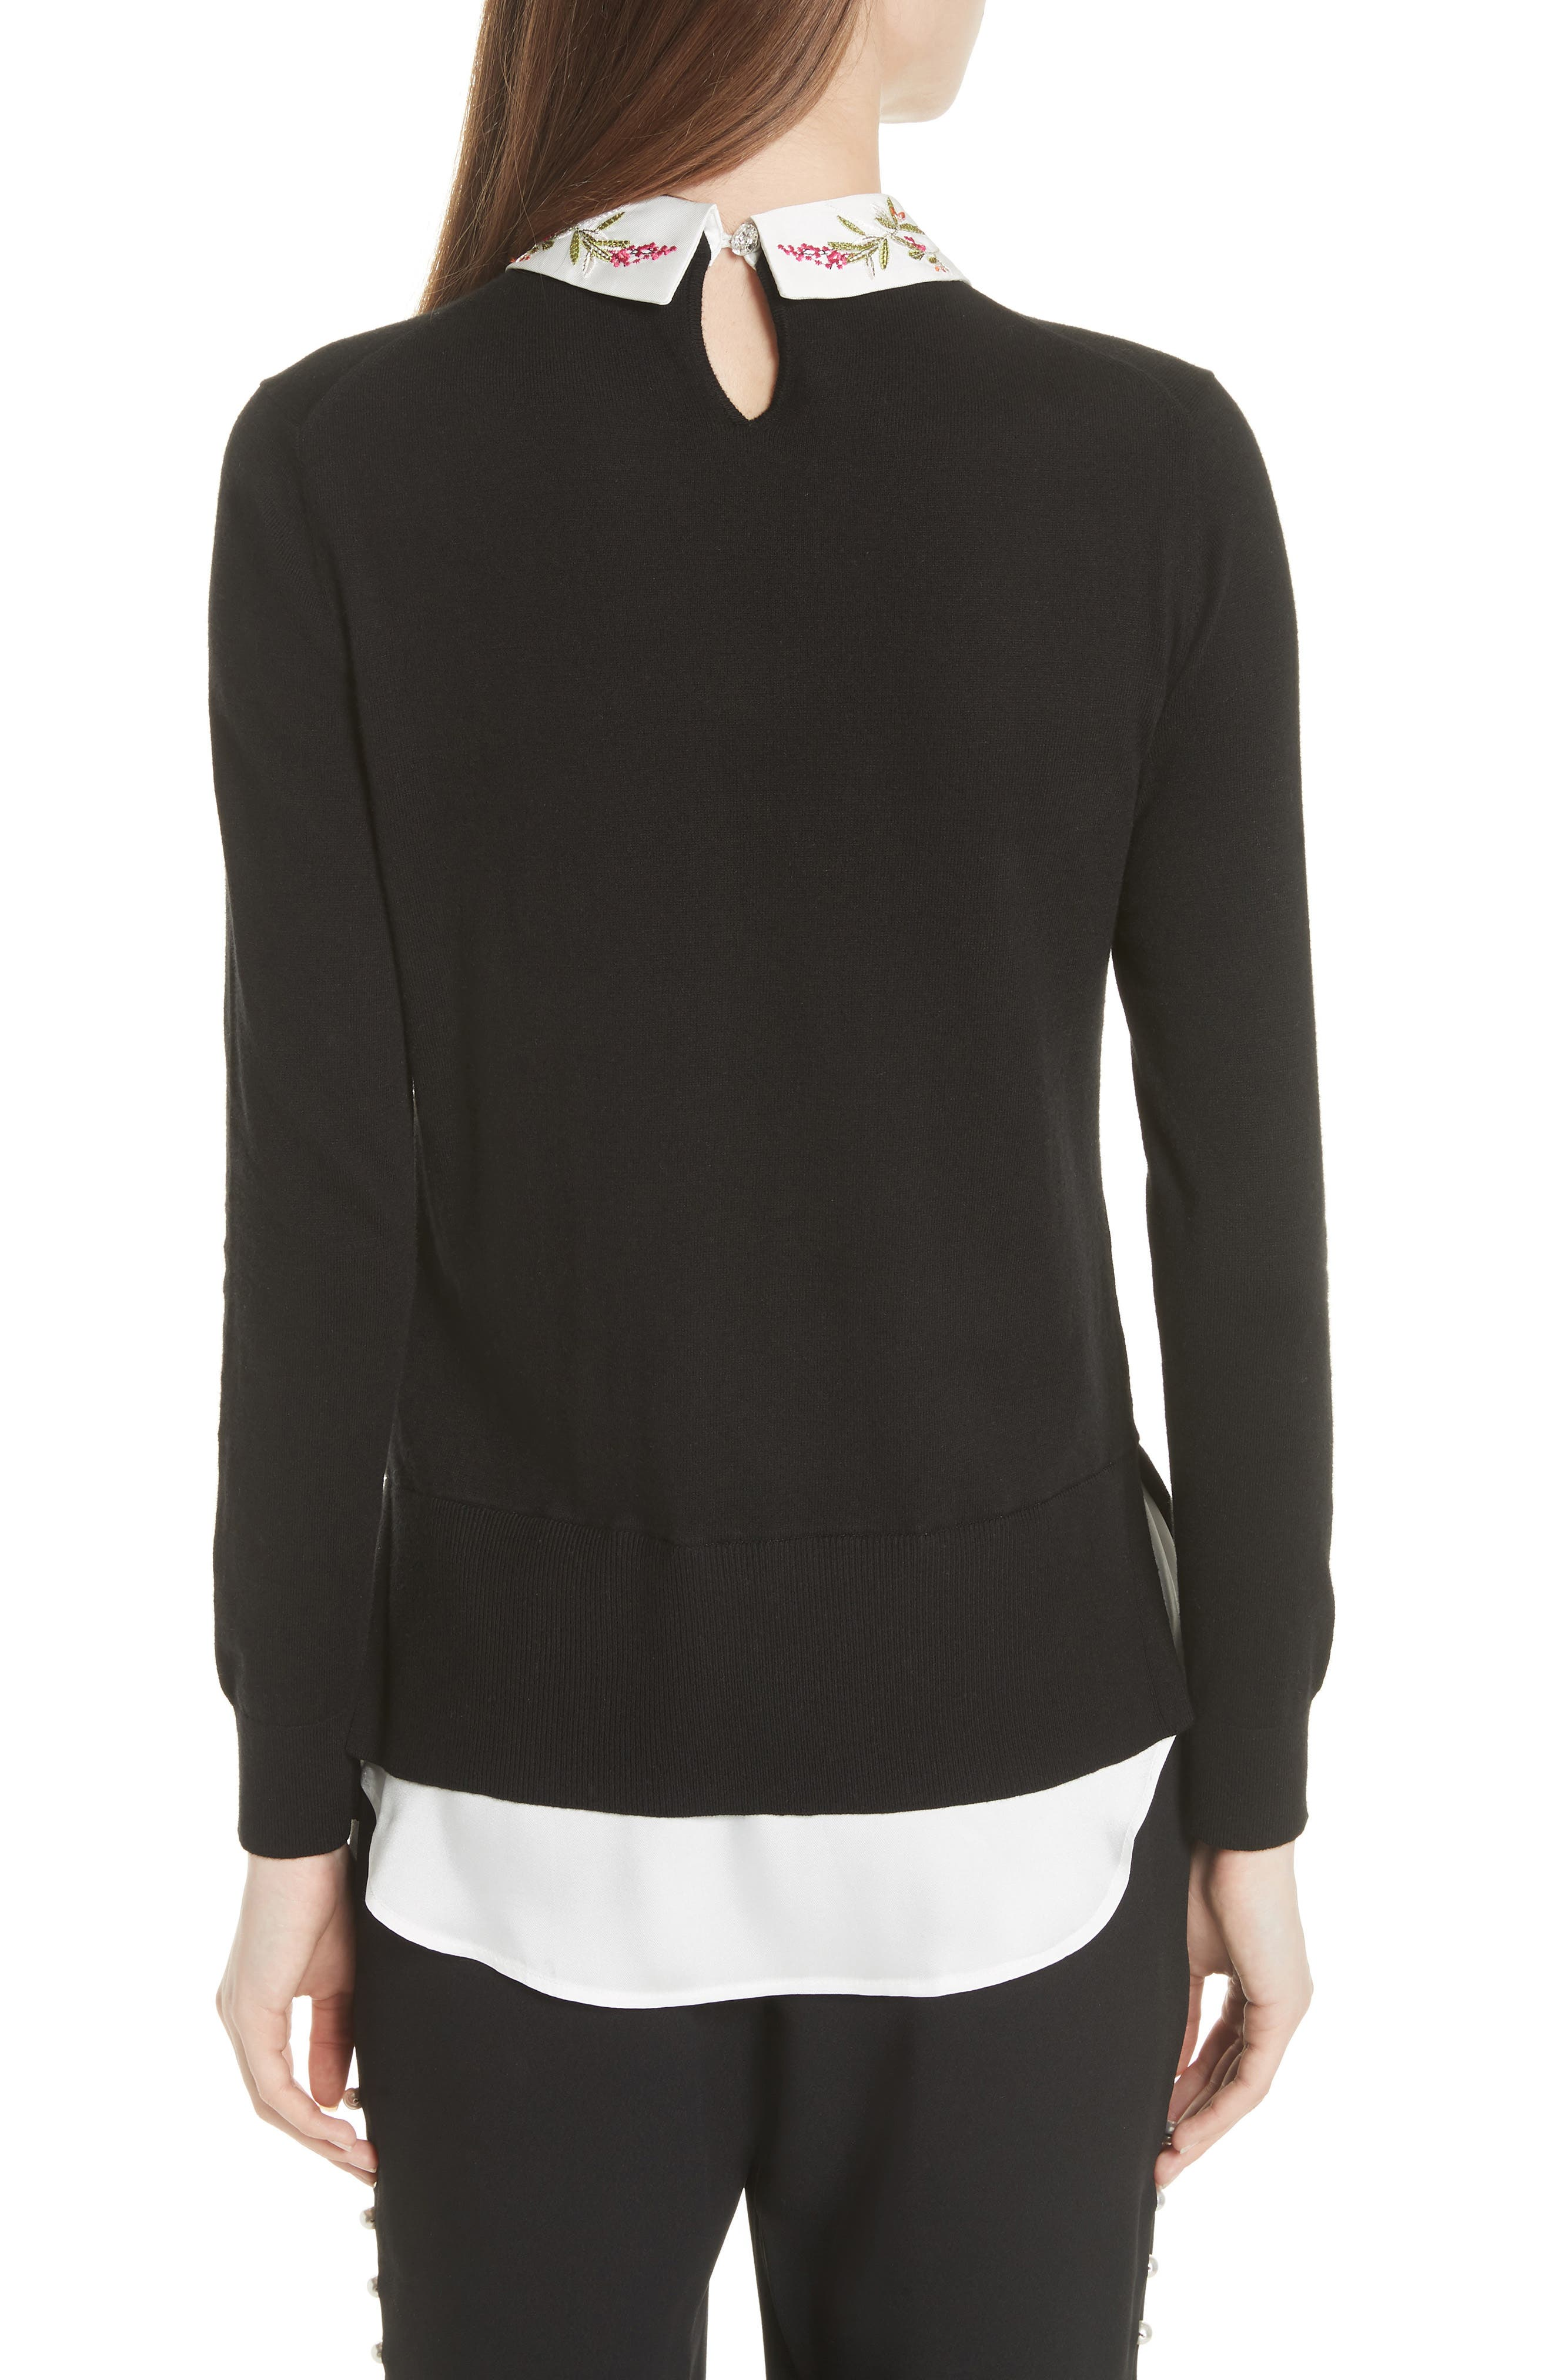 Highgrove Layered Look Sweater,                             Alternate thumbnail 2, color,                             Black